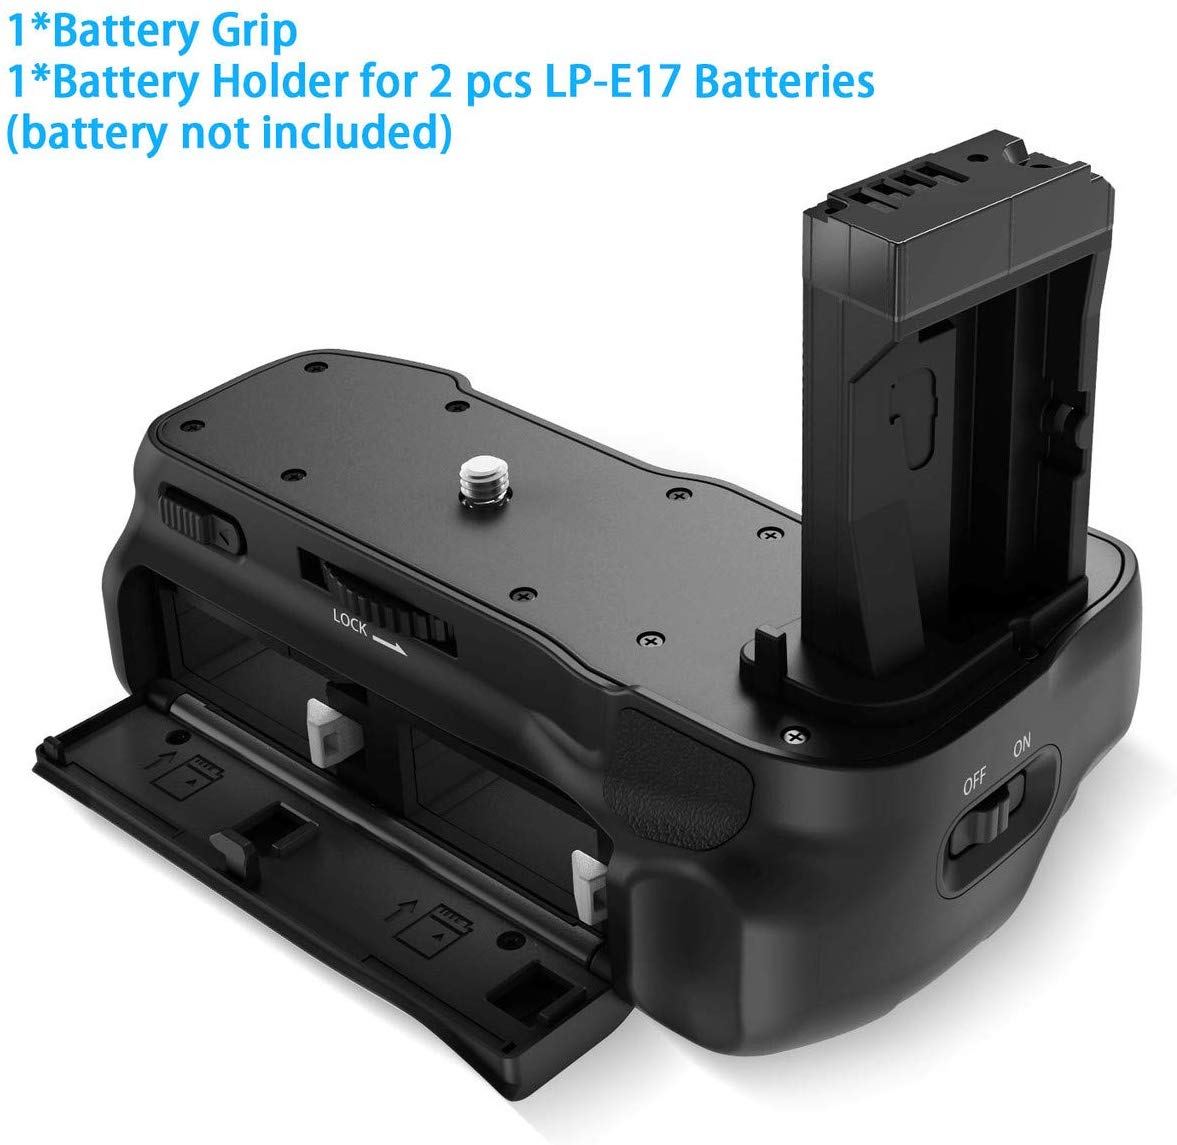 Powerextra EOS-800D Vertical Battery Grip Replacement for Canon Eos 800D/T7i/X9i/77D/9000D DSLR Camera